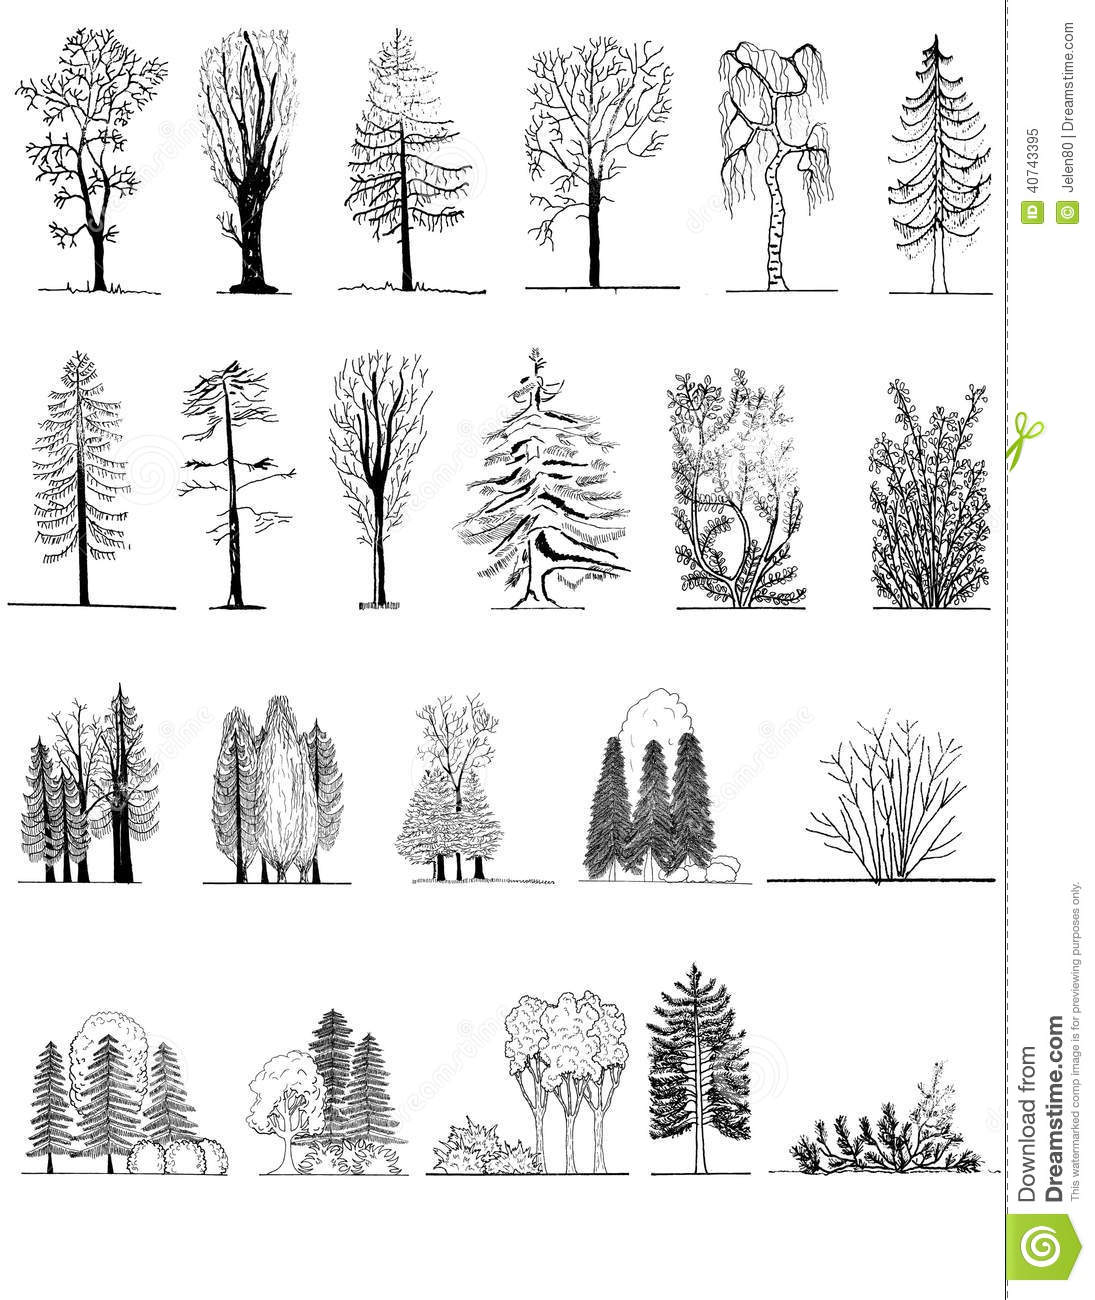 A Set Of Tree Silhouettes For Architectural Or Landscape Design